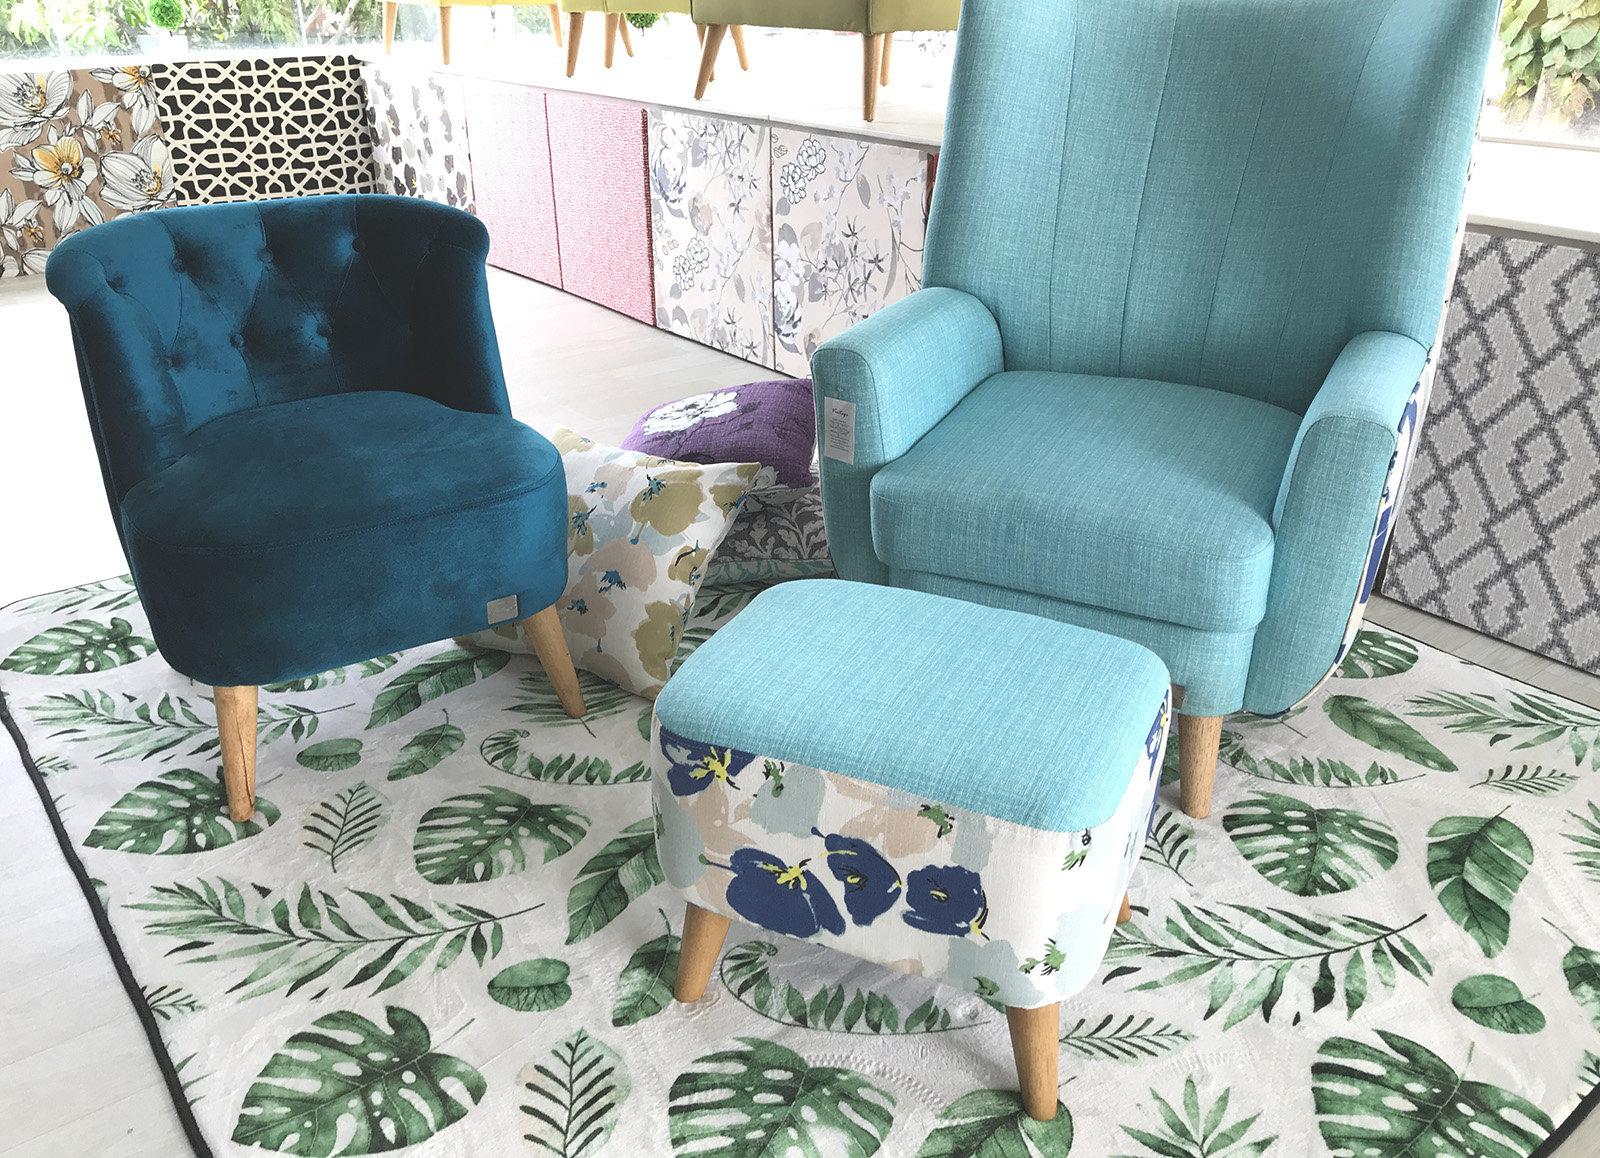 Blue Harisson slipper, Evelyn Armchair with Jackson Footstool and some throw pillow on the floor.